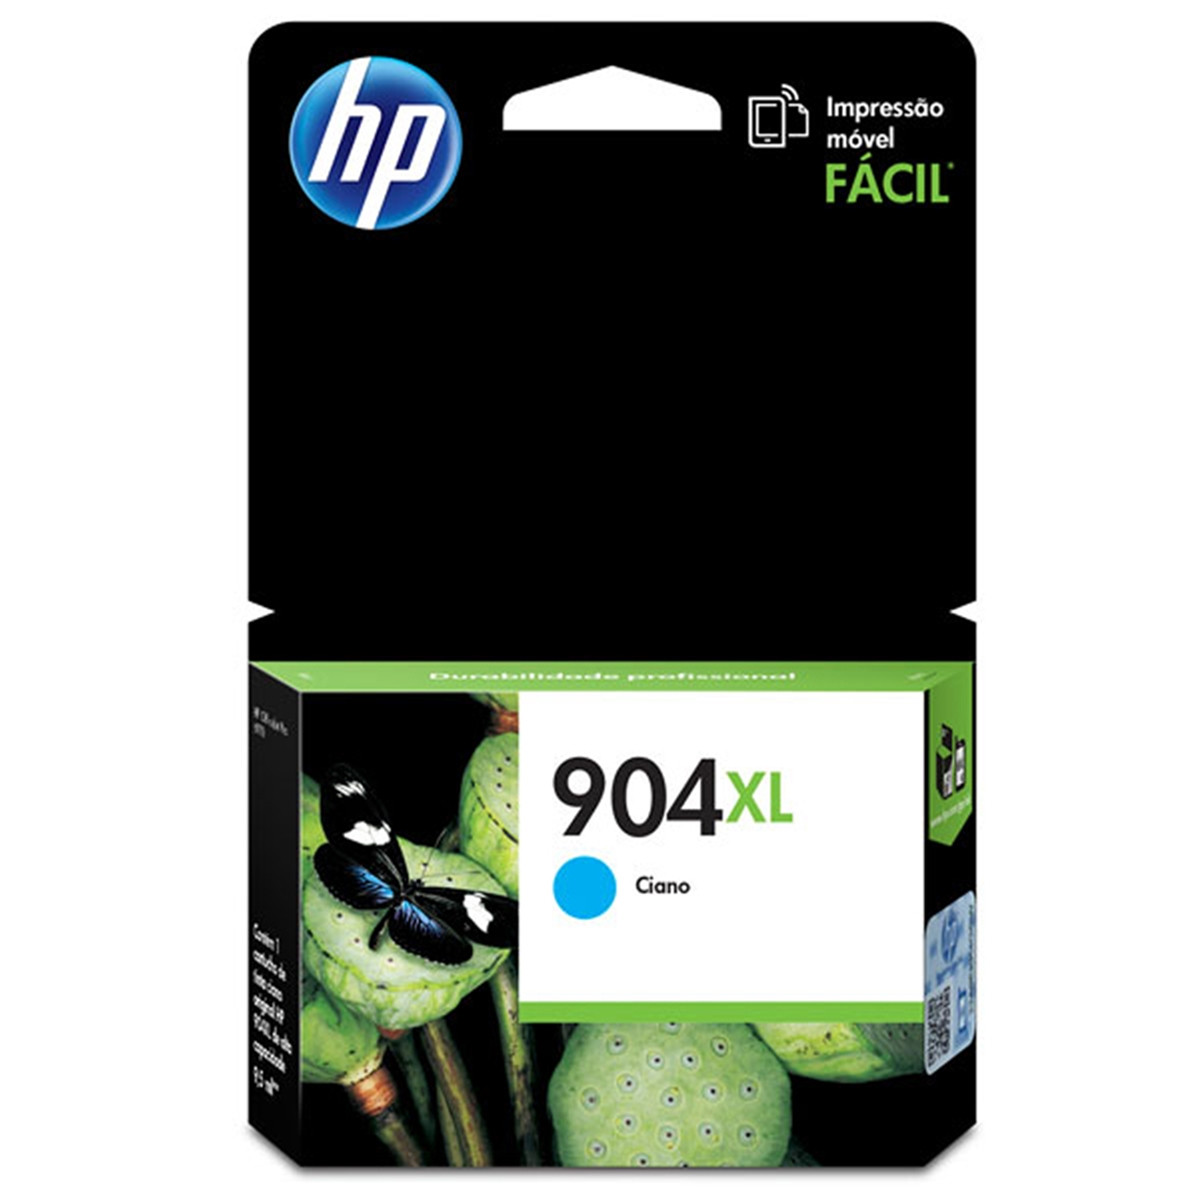 Cartucho de Tinta HP 904XL T6M04AL T6M04AB Ciano | Officejet Pro 6970 | Original 9,5ml